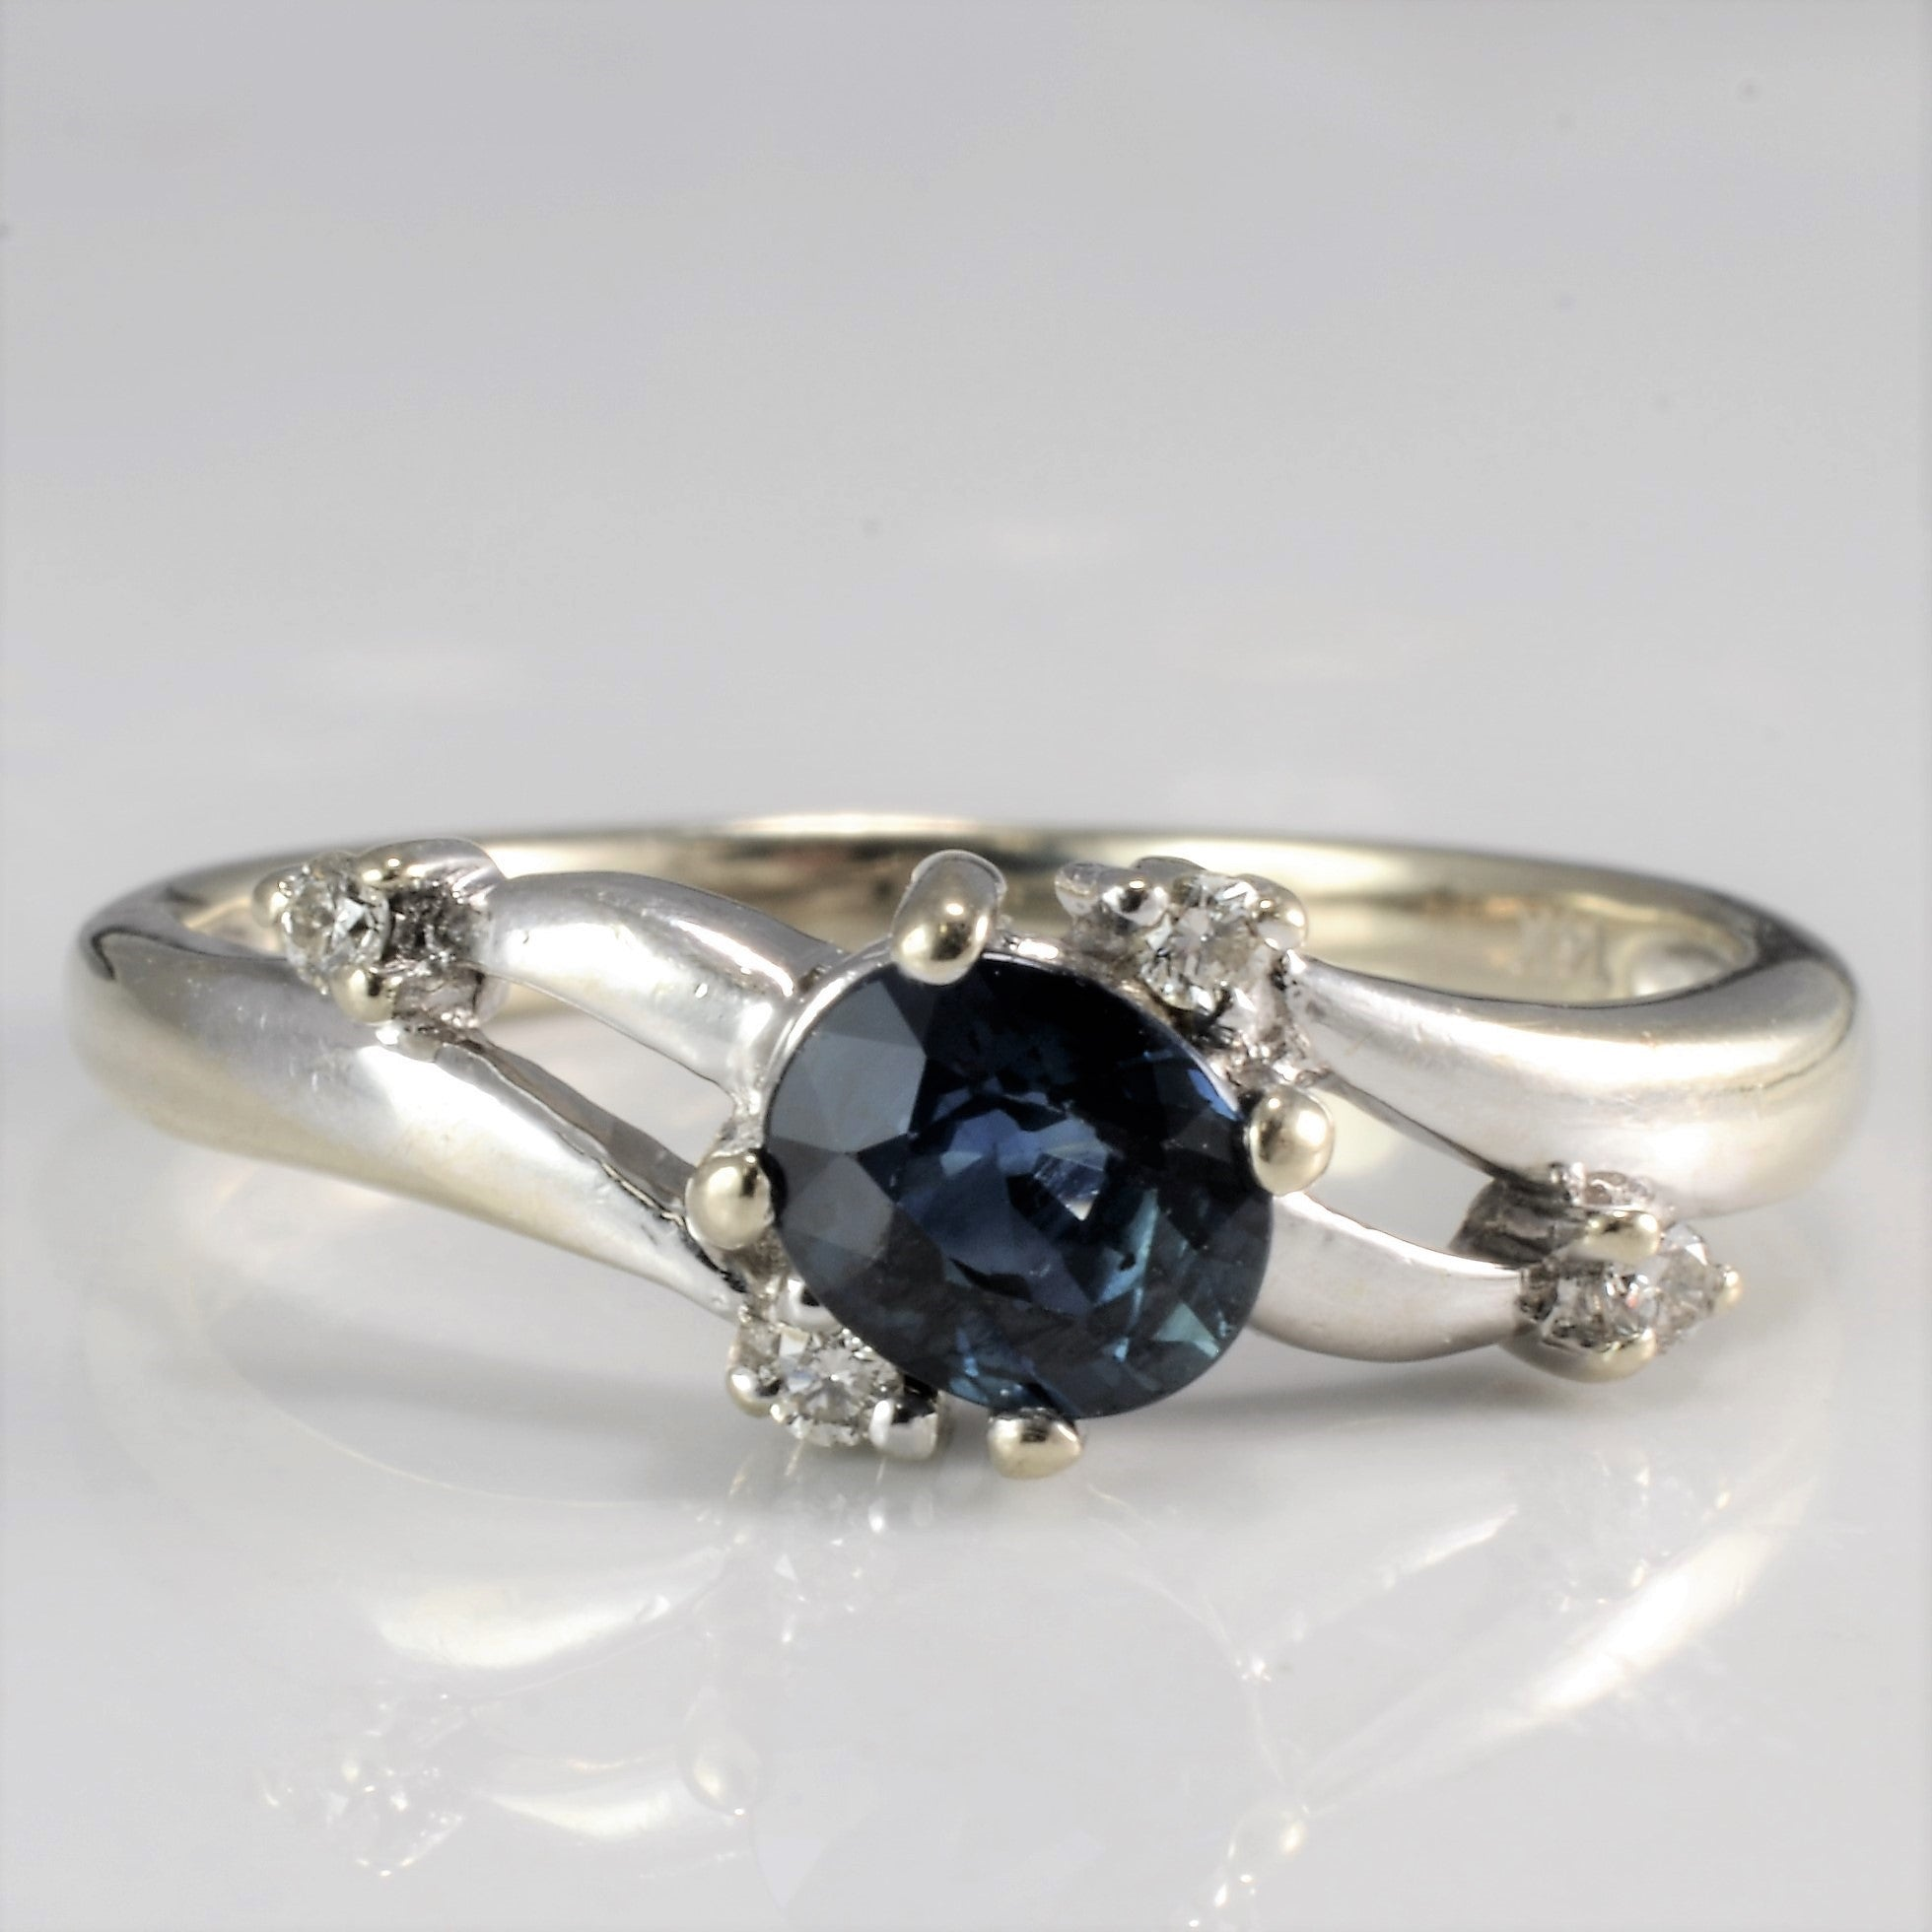 ring sterling cushion jewelrypalace women engagement solitaire jewelry new blue silver created sapphire